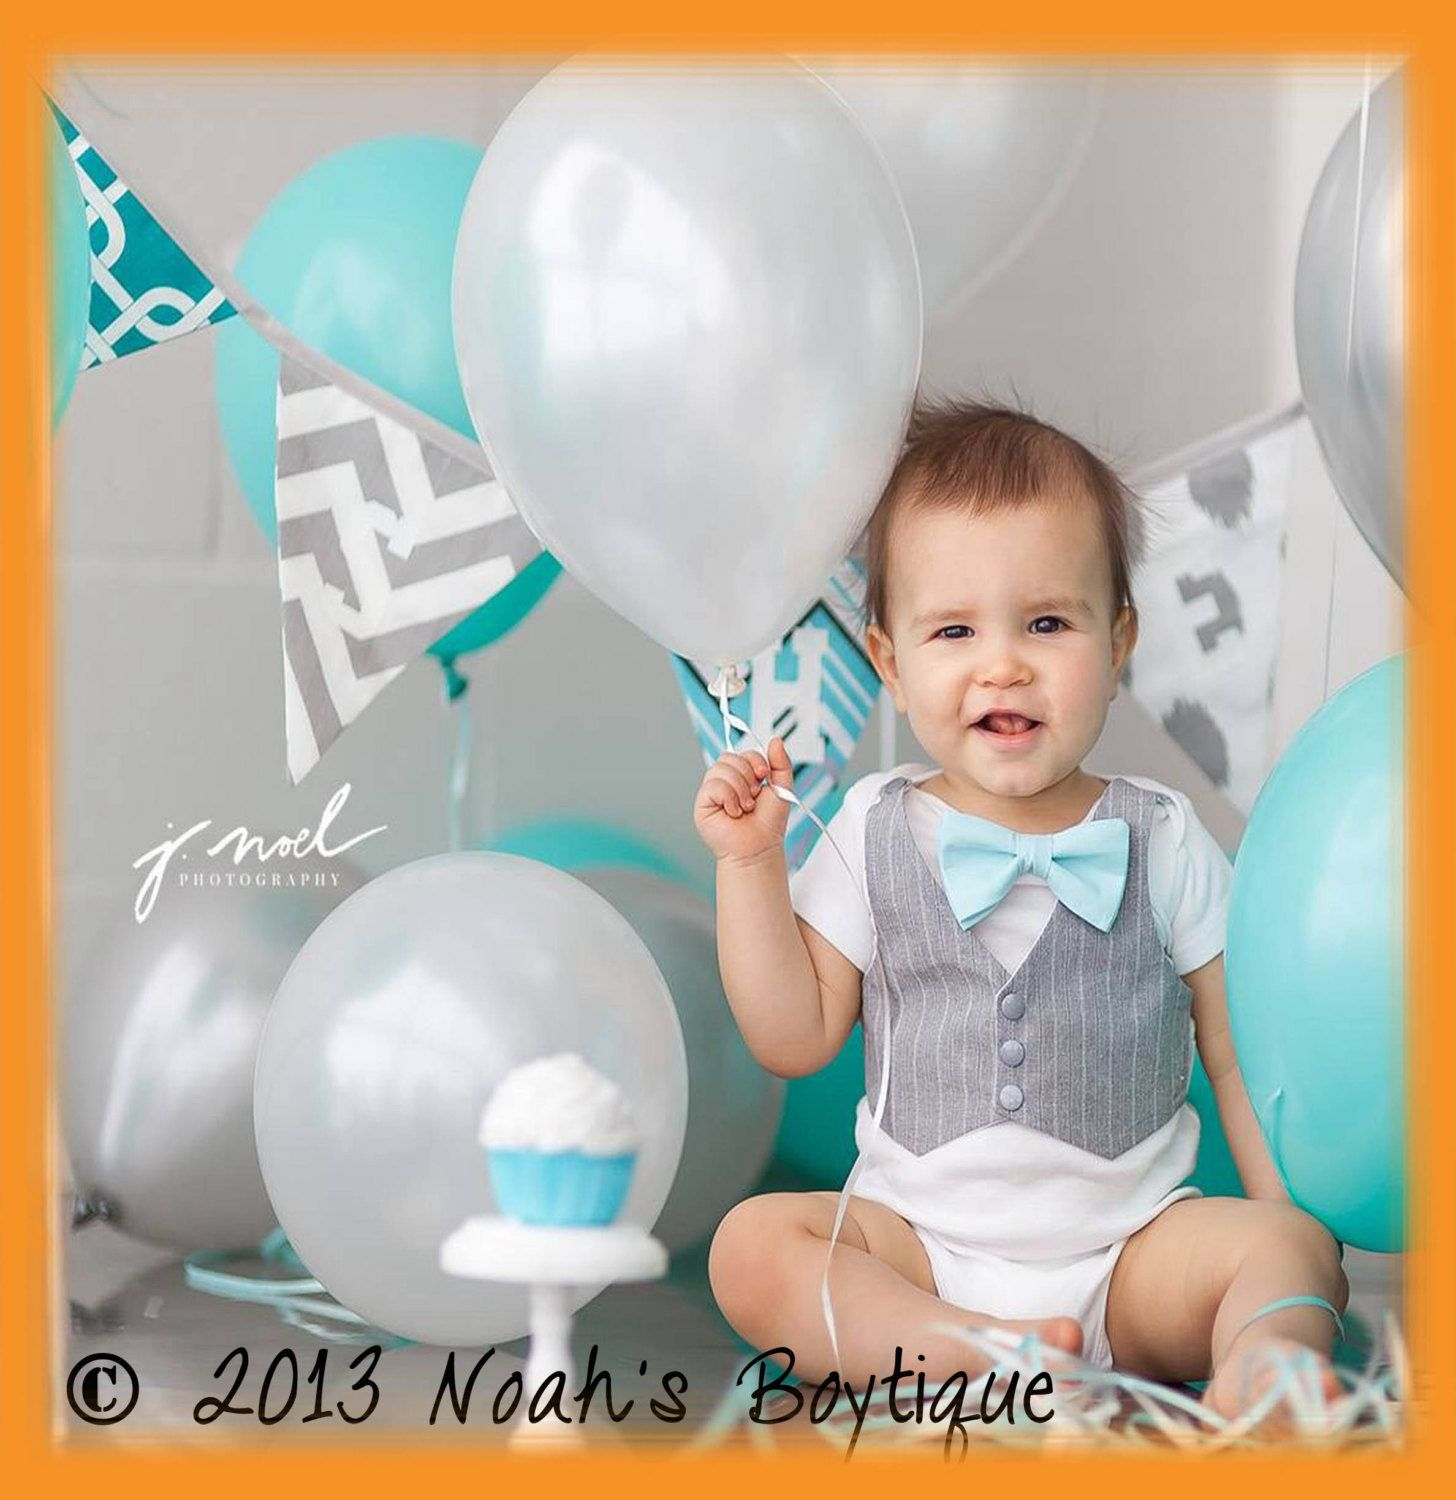 Cake Smash Outfit Baby Boy - Aqua and Grey - Spring Wedding Outfit ...